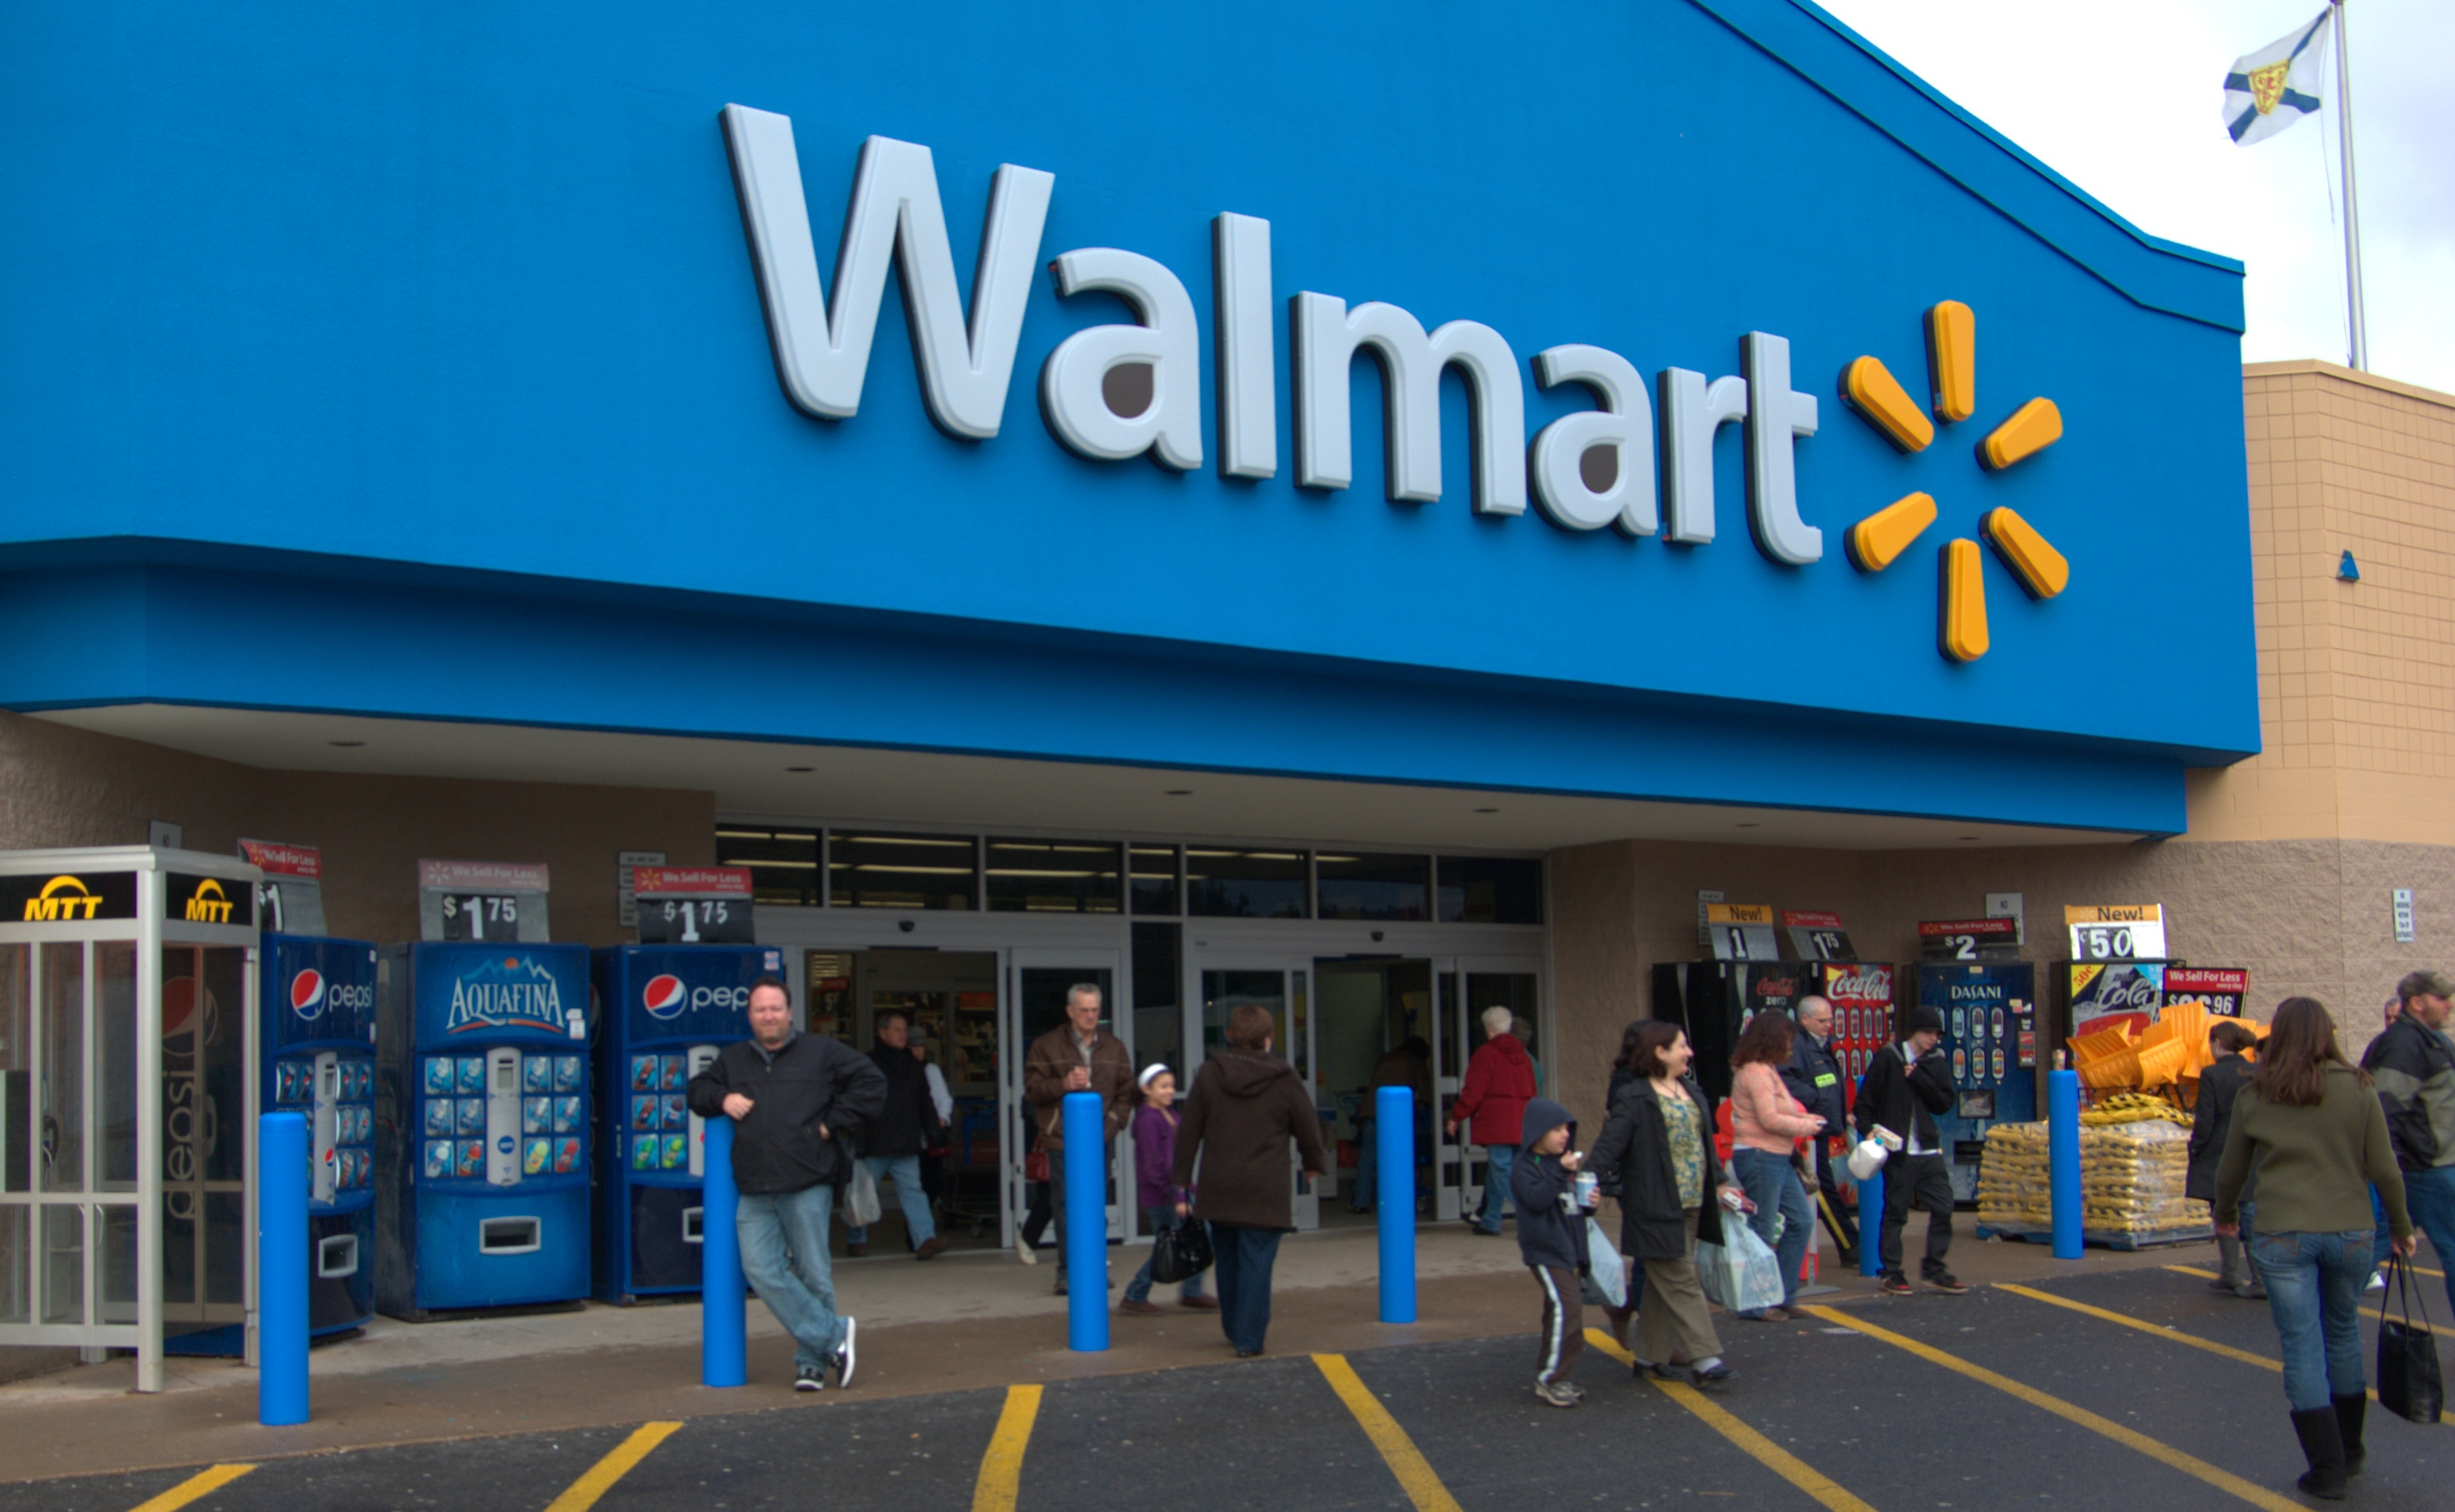 Walmart Wallpapers Images Photos Pictures Backgrounds 3367x2074